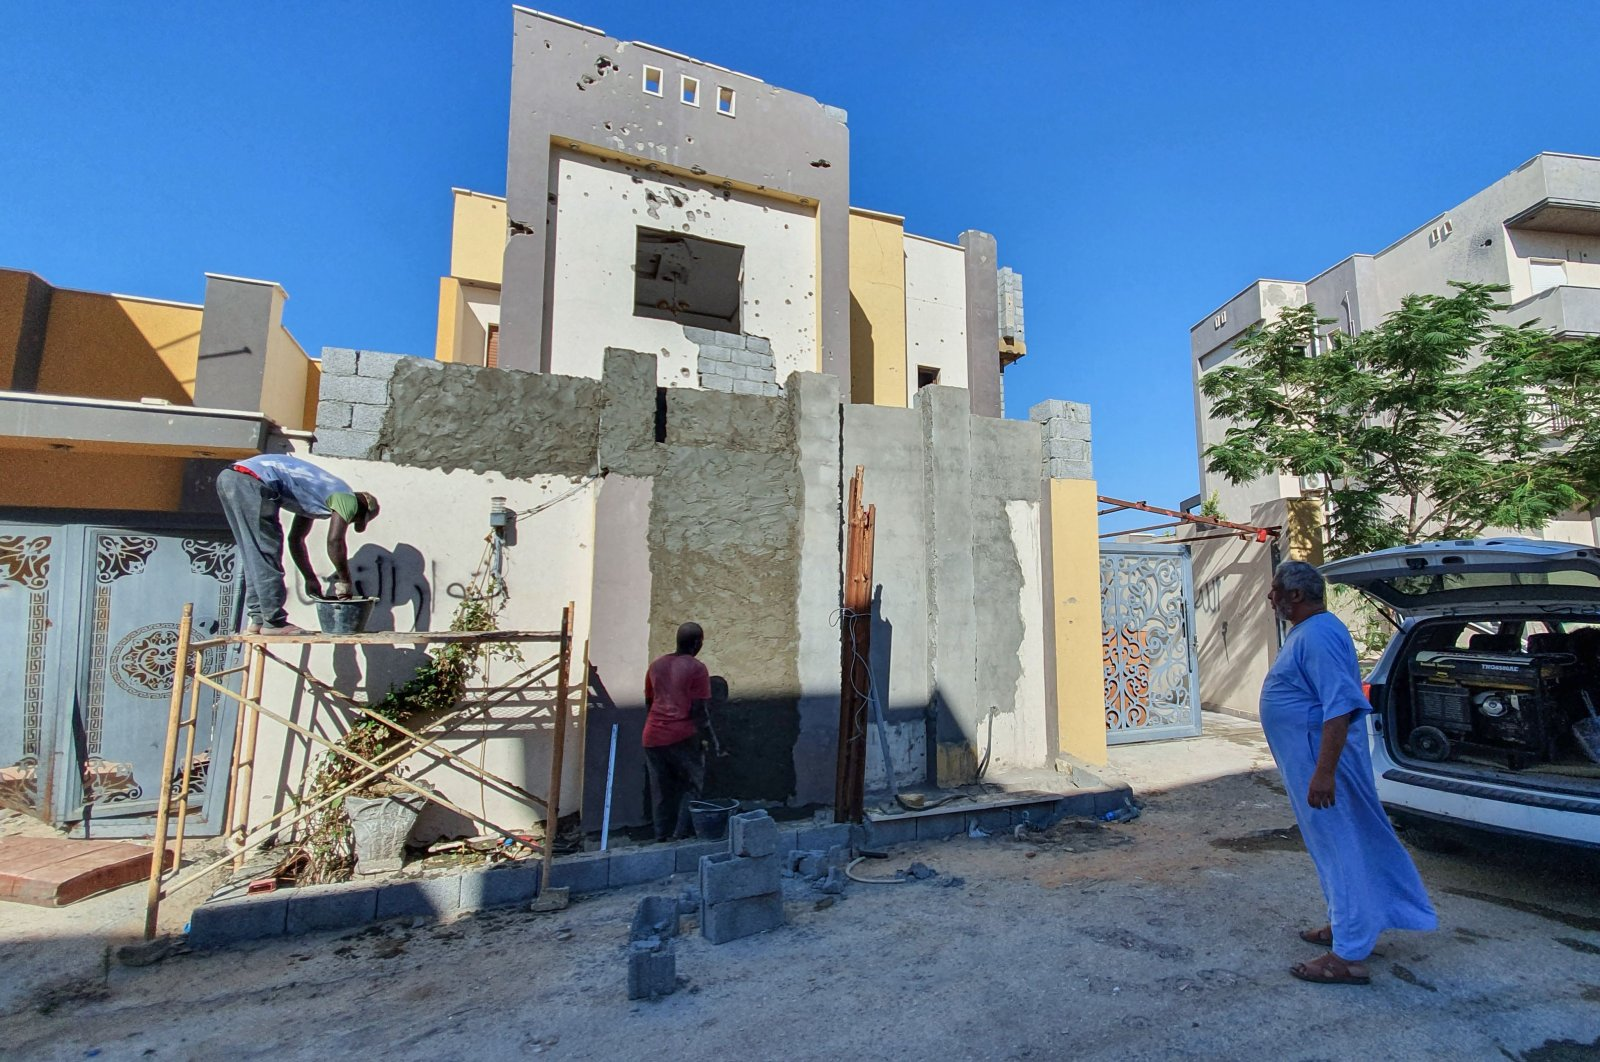 A Libyan man inspects workers renovating a damaged home in the Salaheddin district south of the capital Tripoli, June 21, 2020. (AFP Photo)